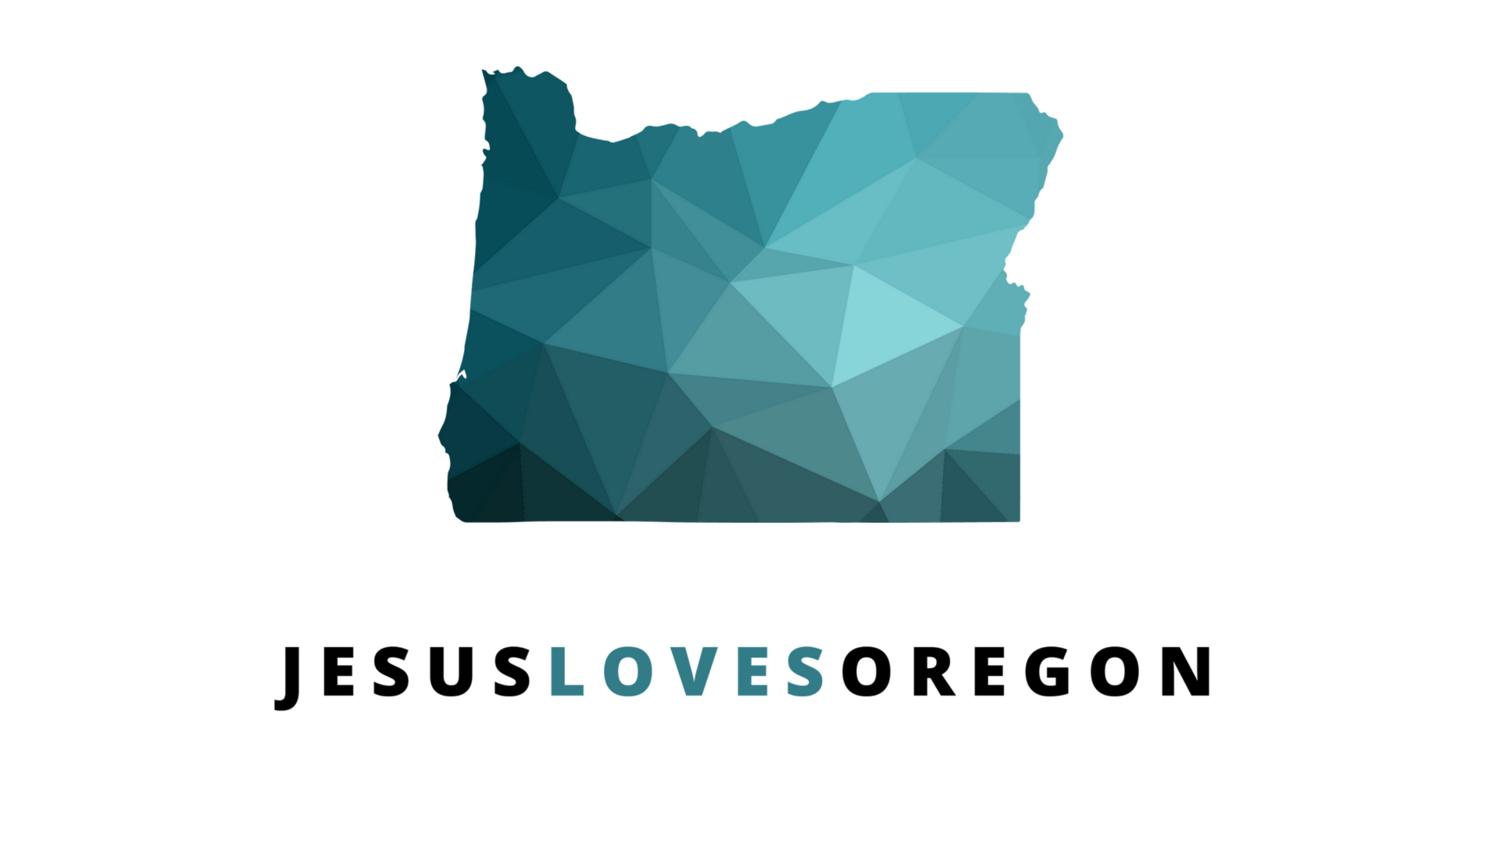 JESUS LOVES OREGON